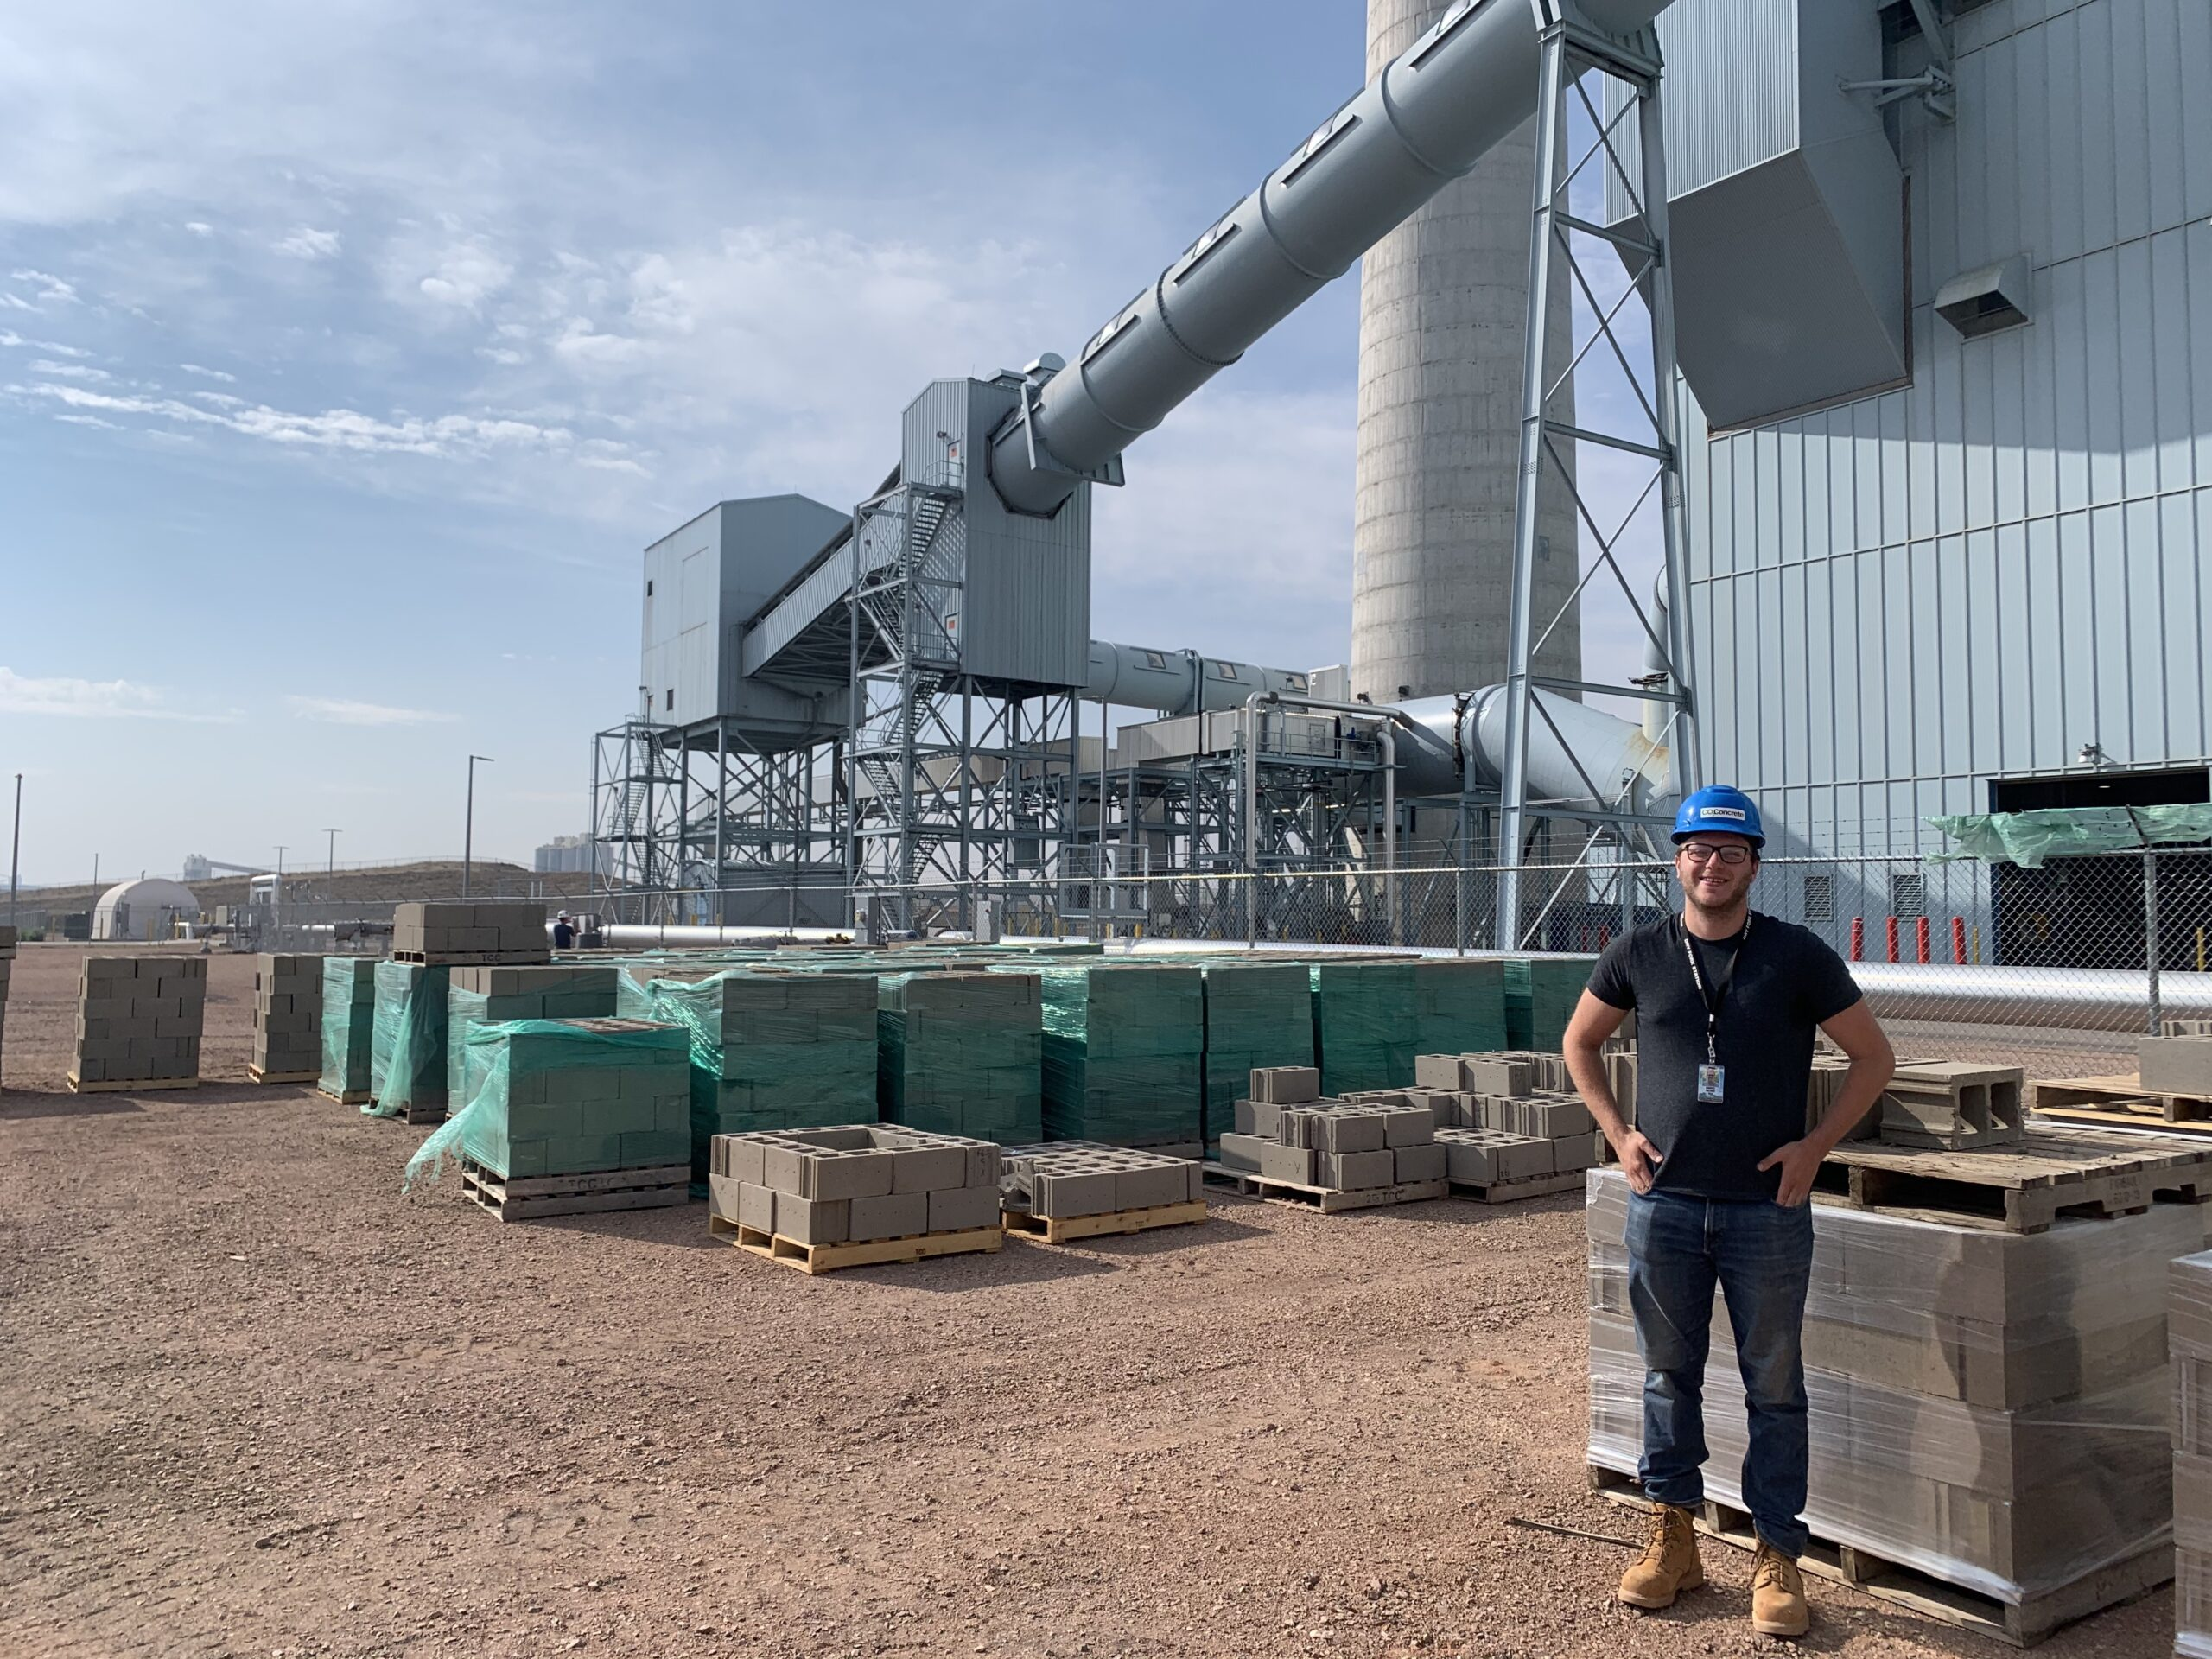 Gabe Falzone with the team CO2Concrete next to roughly 70 tons of concrete produced with CO2